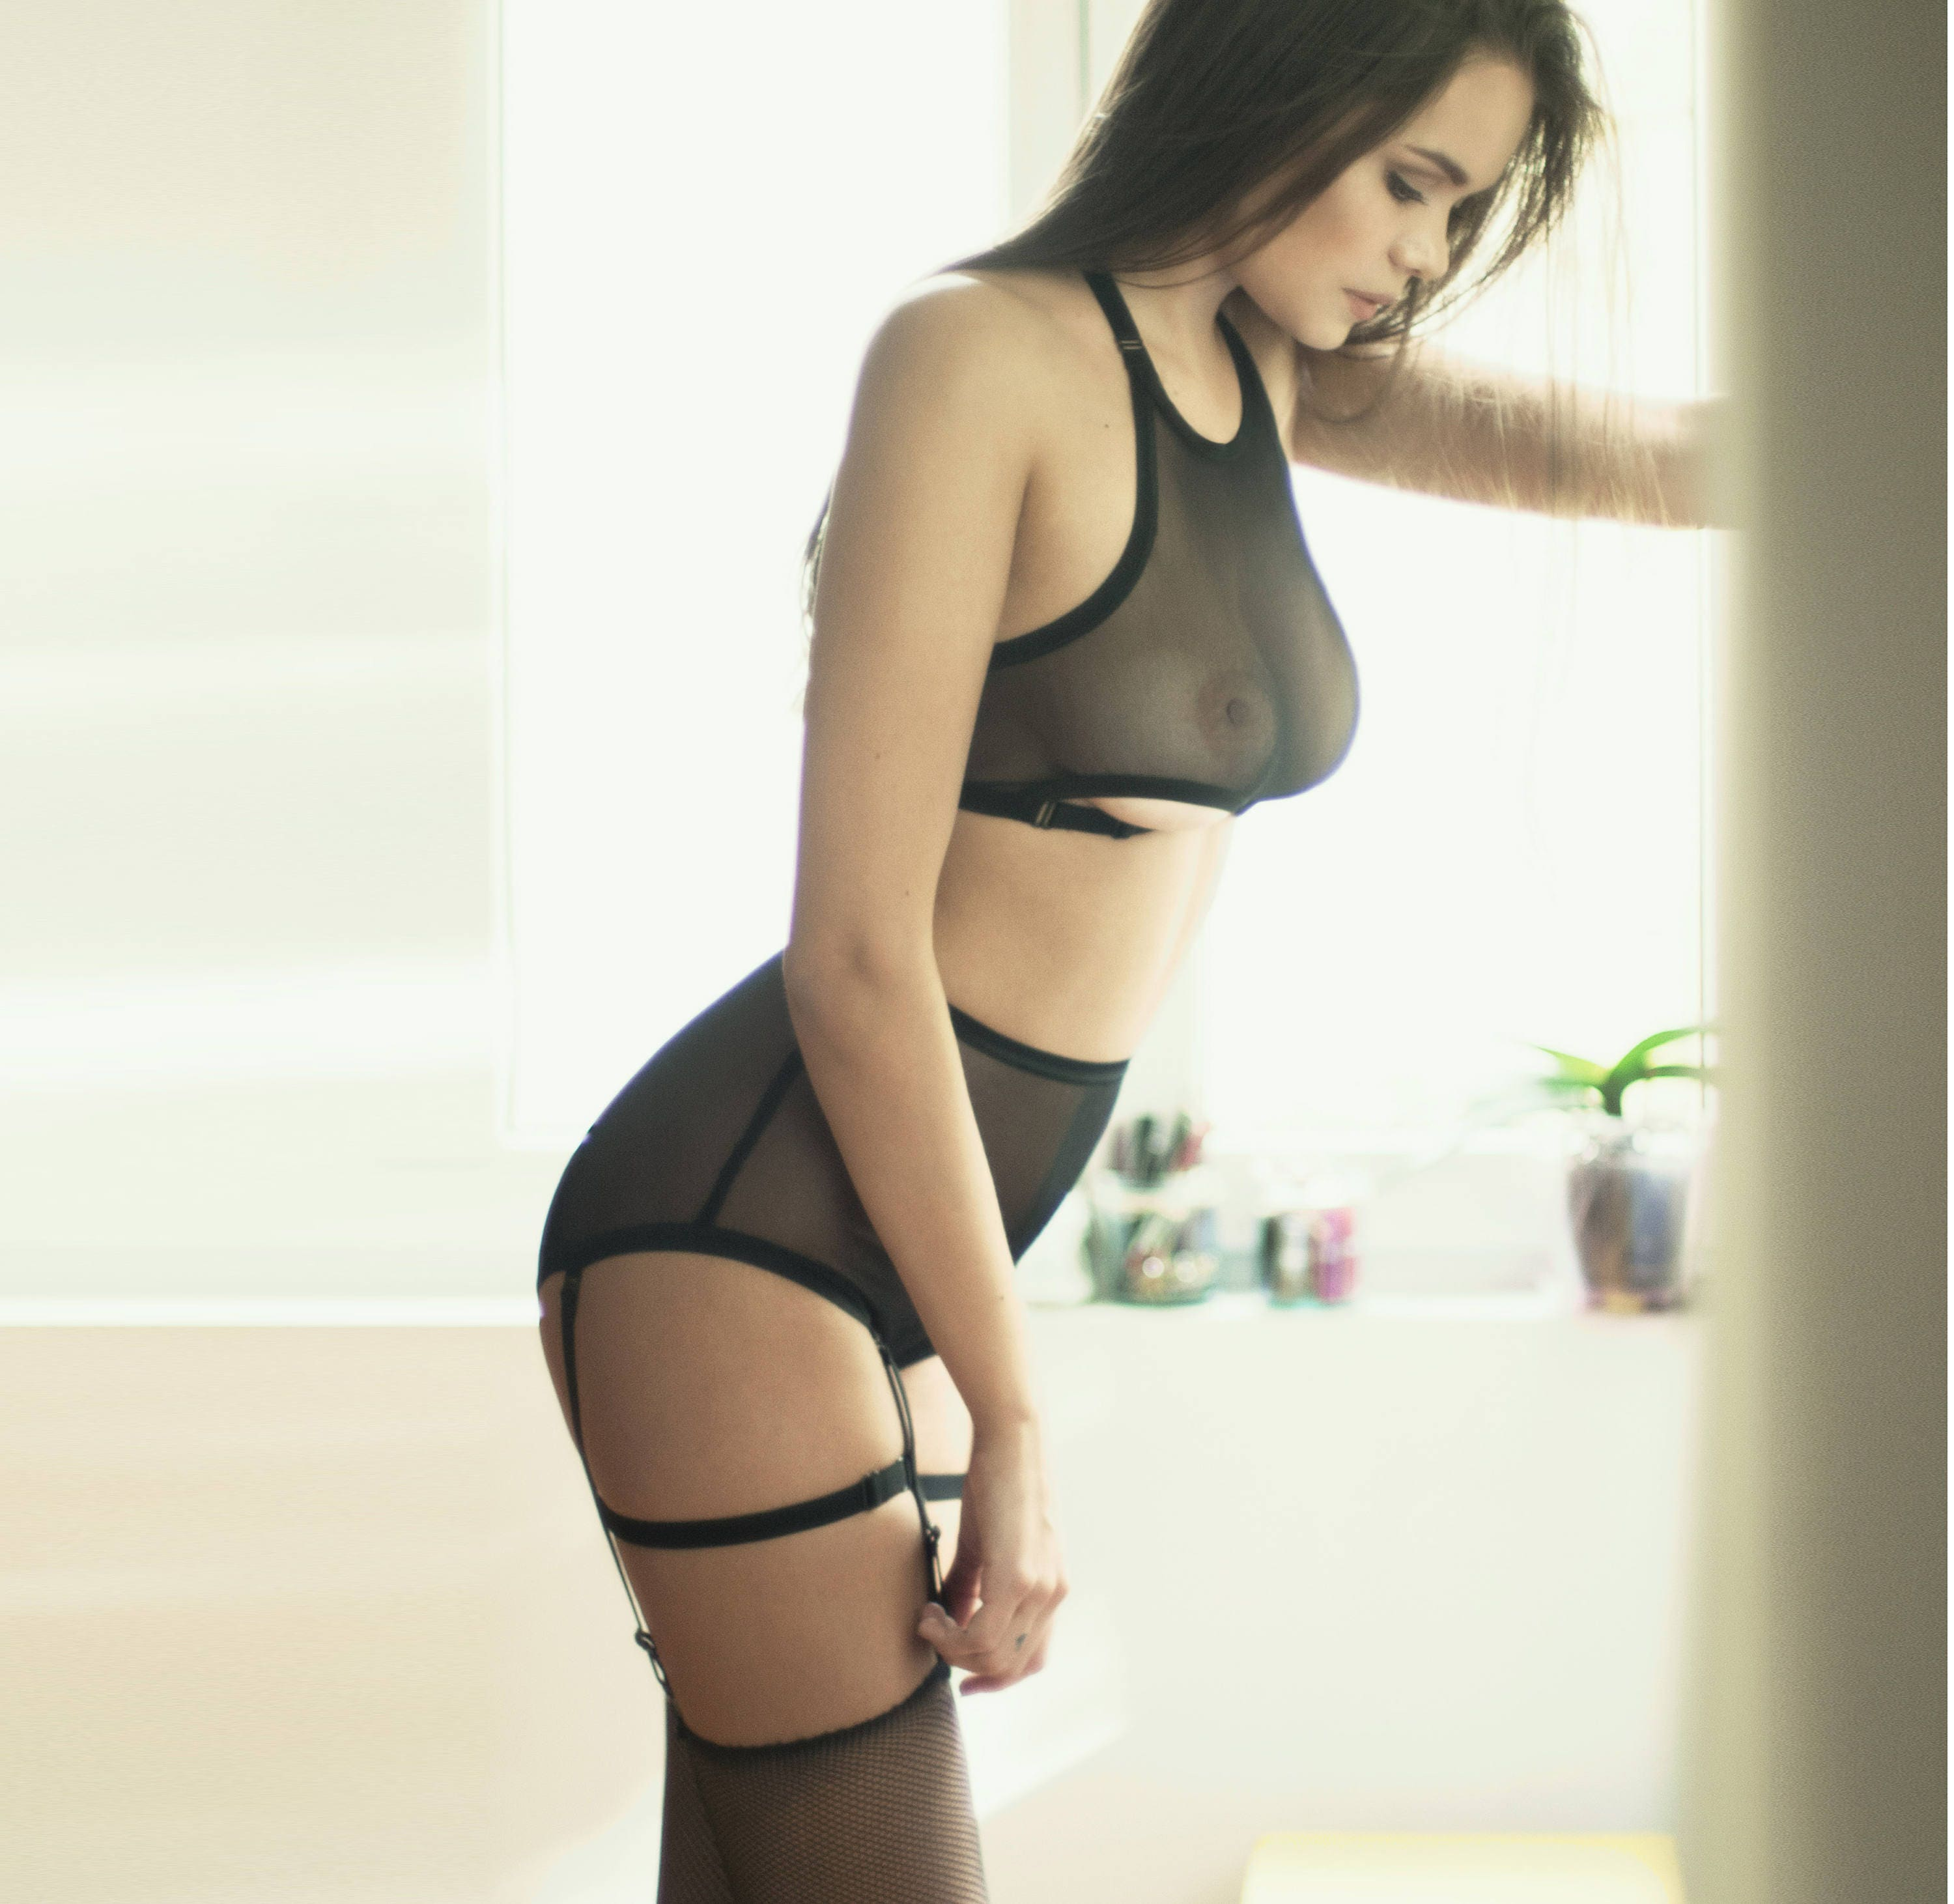 Normal lady treffe gute Jungs online sensual and